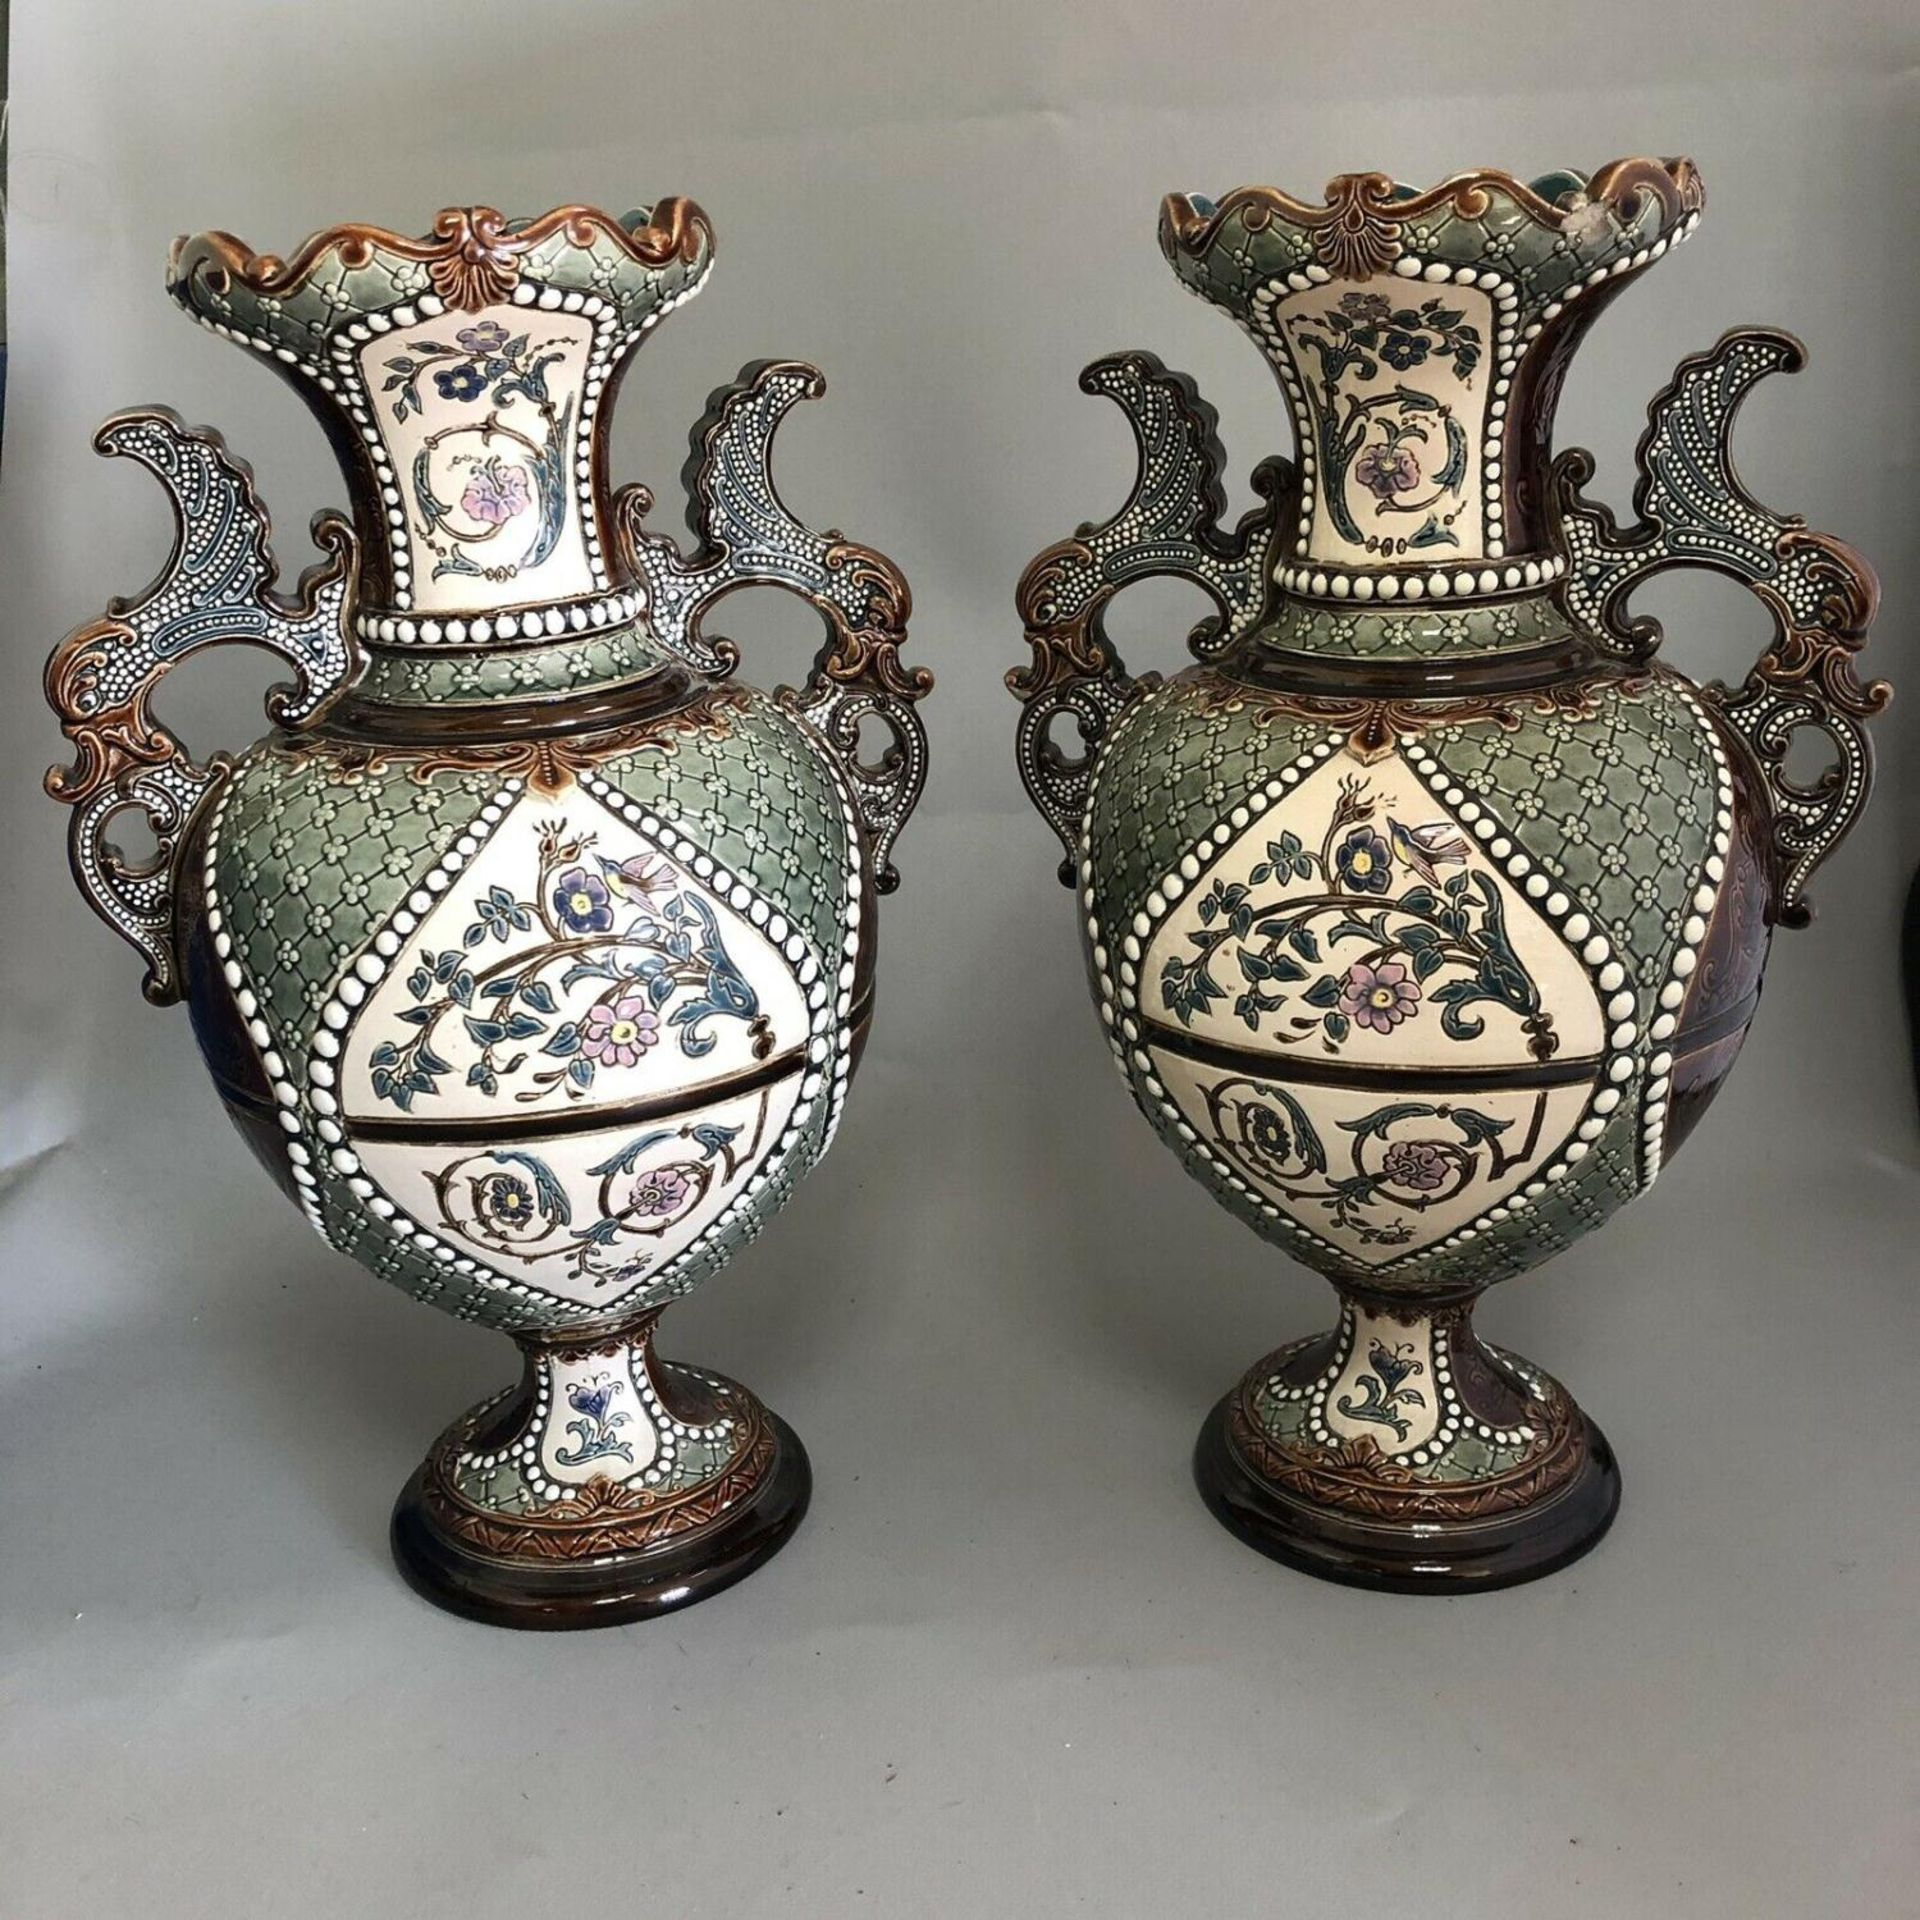 Lot 46 - Pair of Antique Austrian Gerbing & Stephan Majolica Pottery Vases c.1880